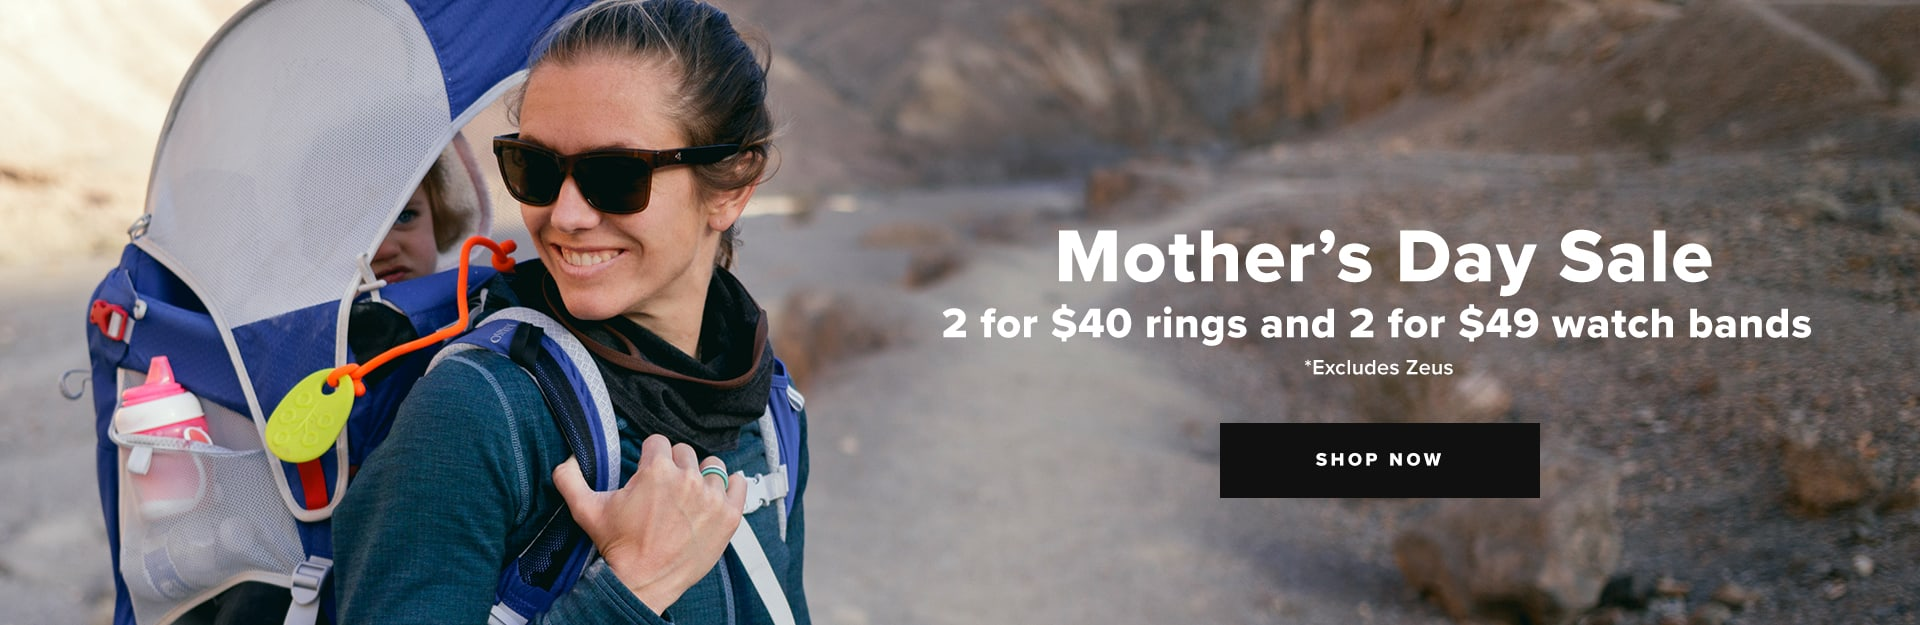 Shop Mother's Day Sale,  2 for $40 rings and 2 for $49 watch bands